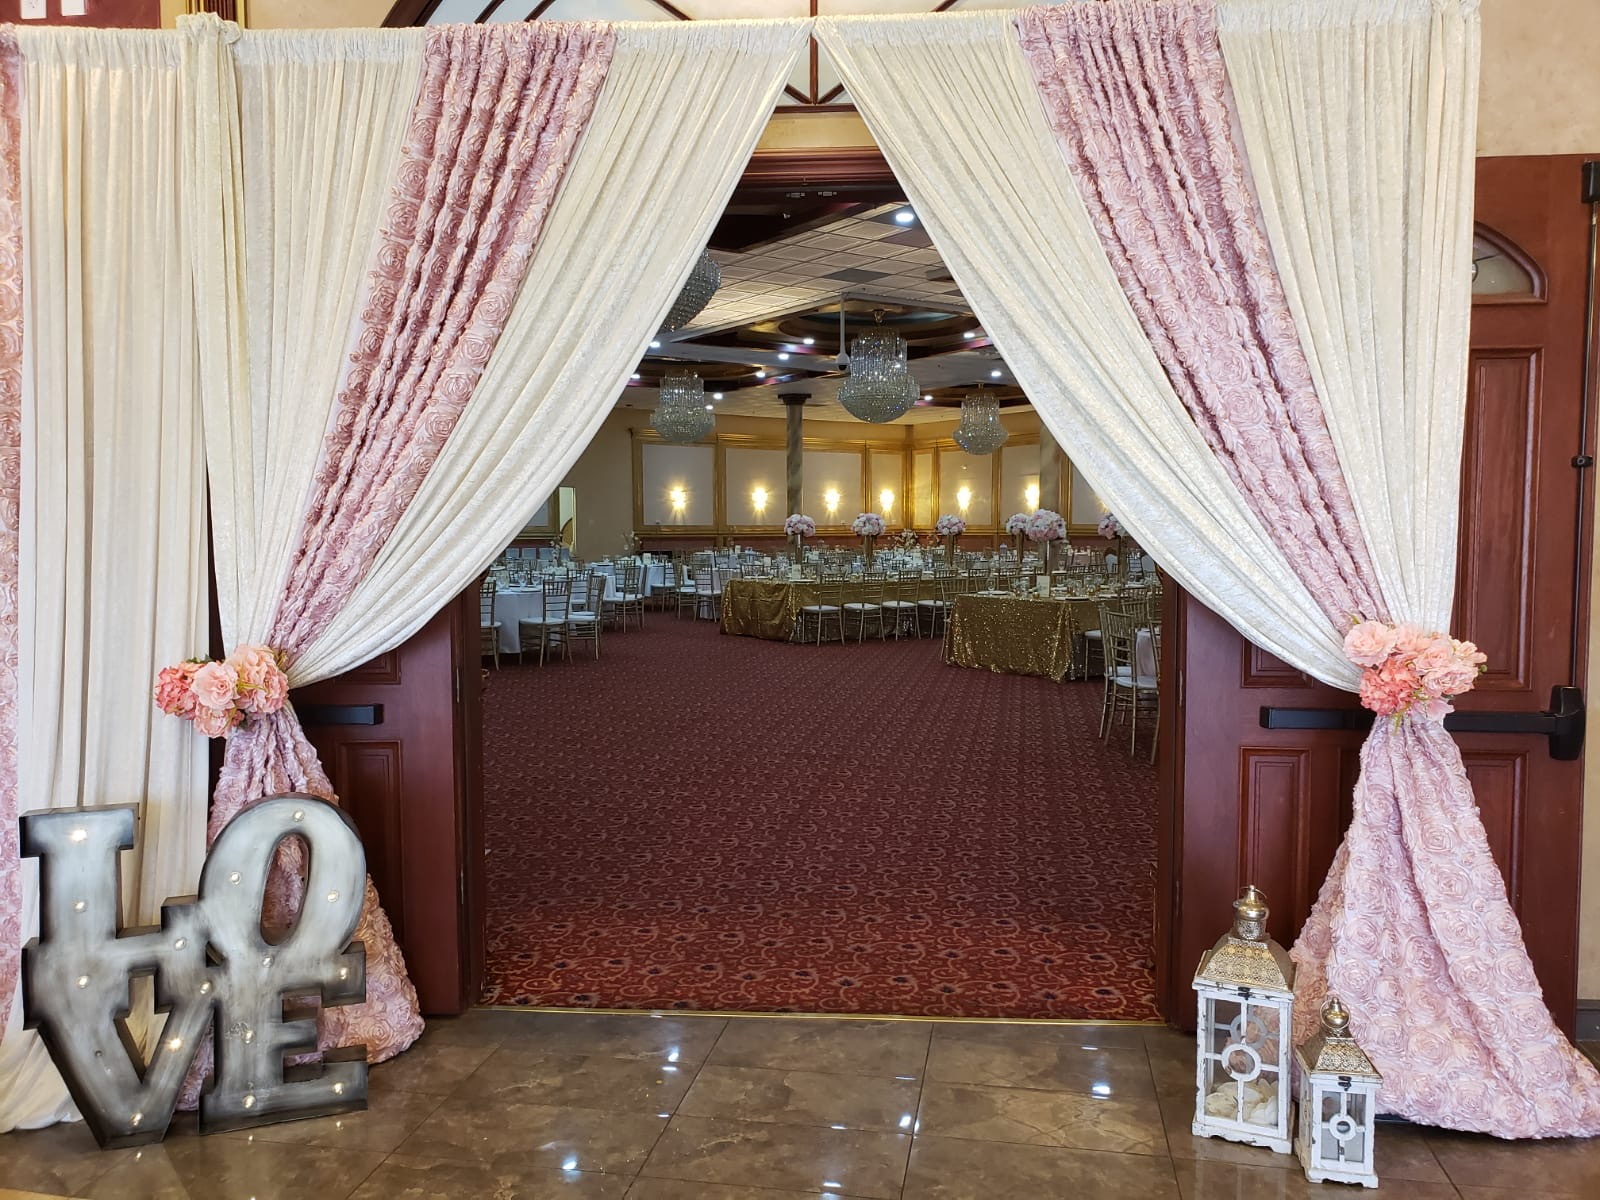 Wedding Entrance Draping & Decor